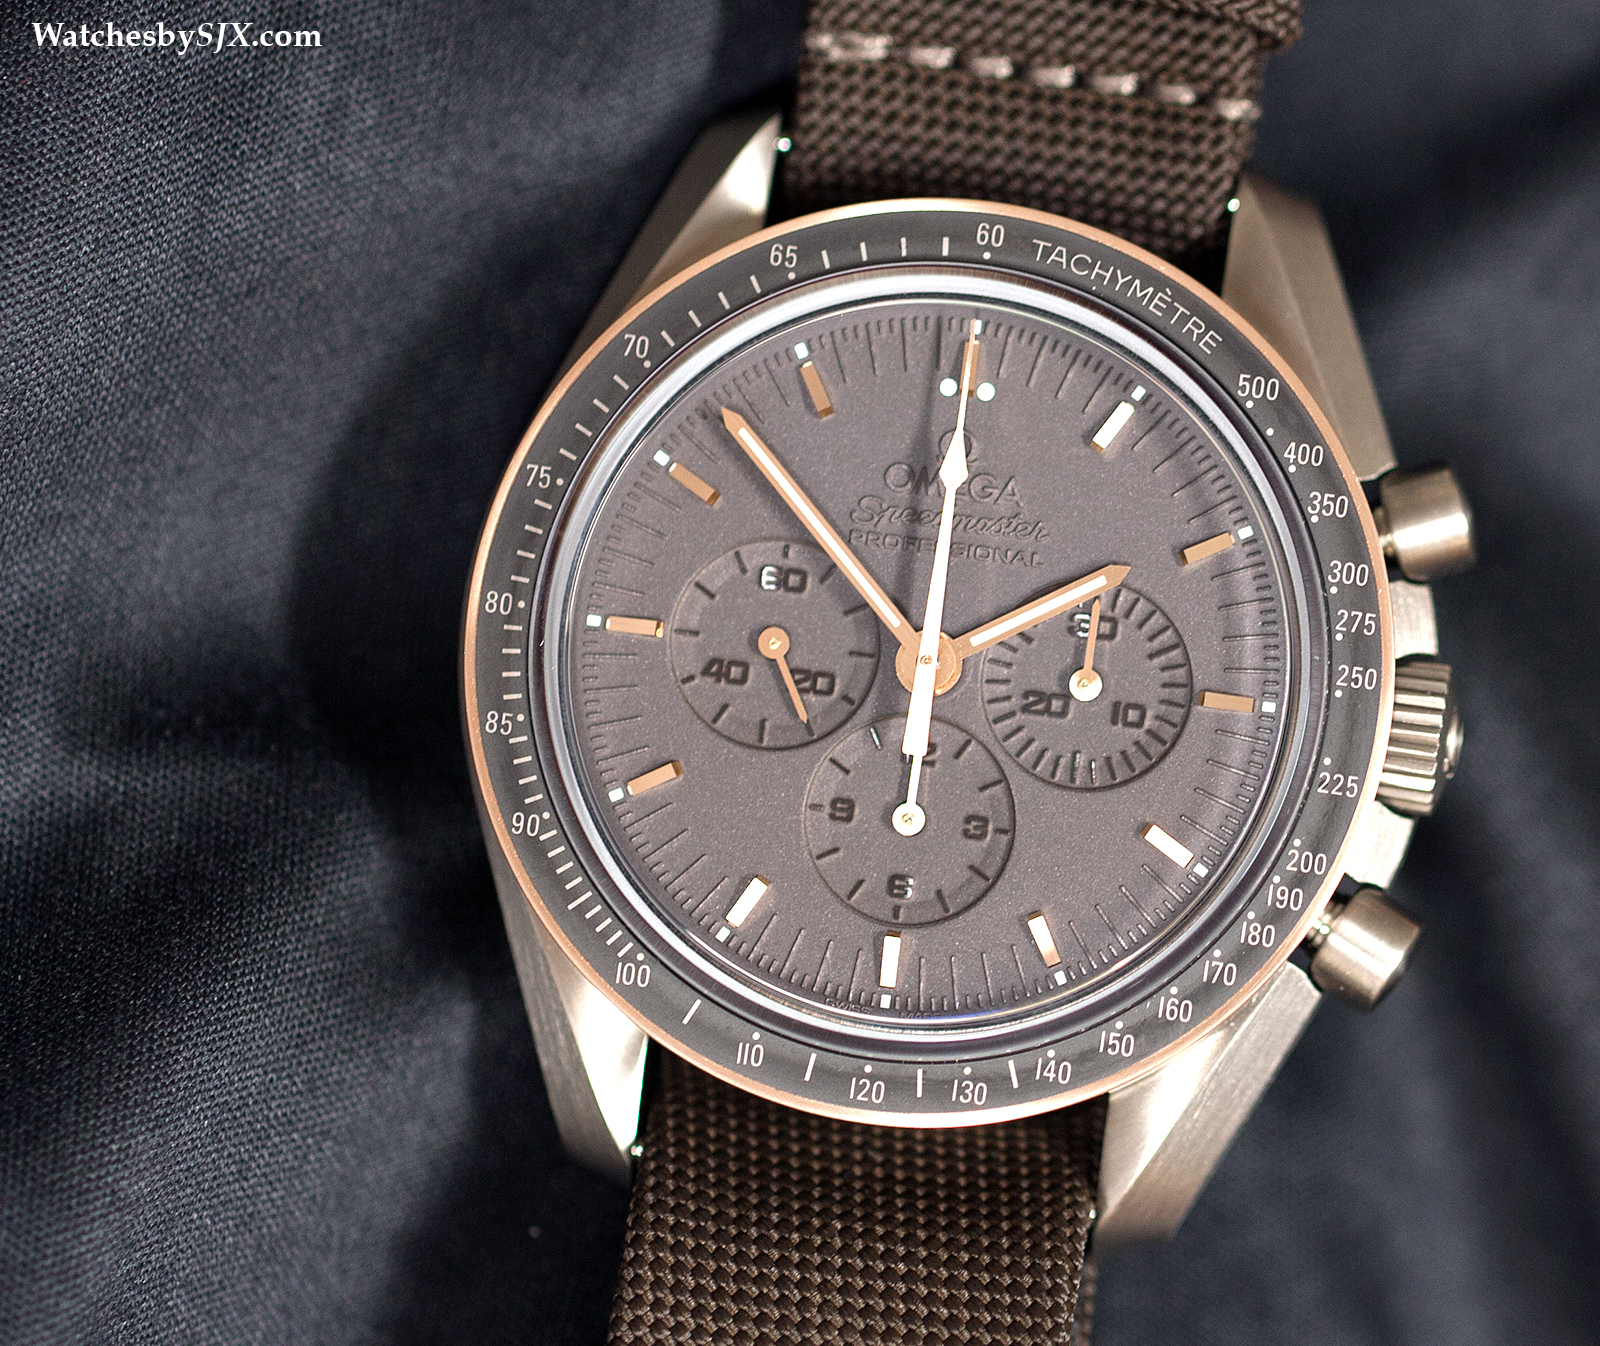 Hands On With The Omega Speedmaster Apollo 11 45th Anniversary The